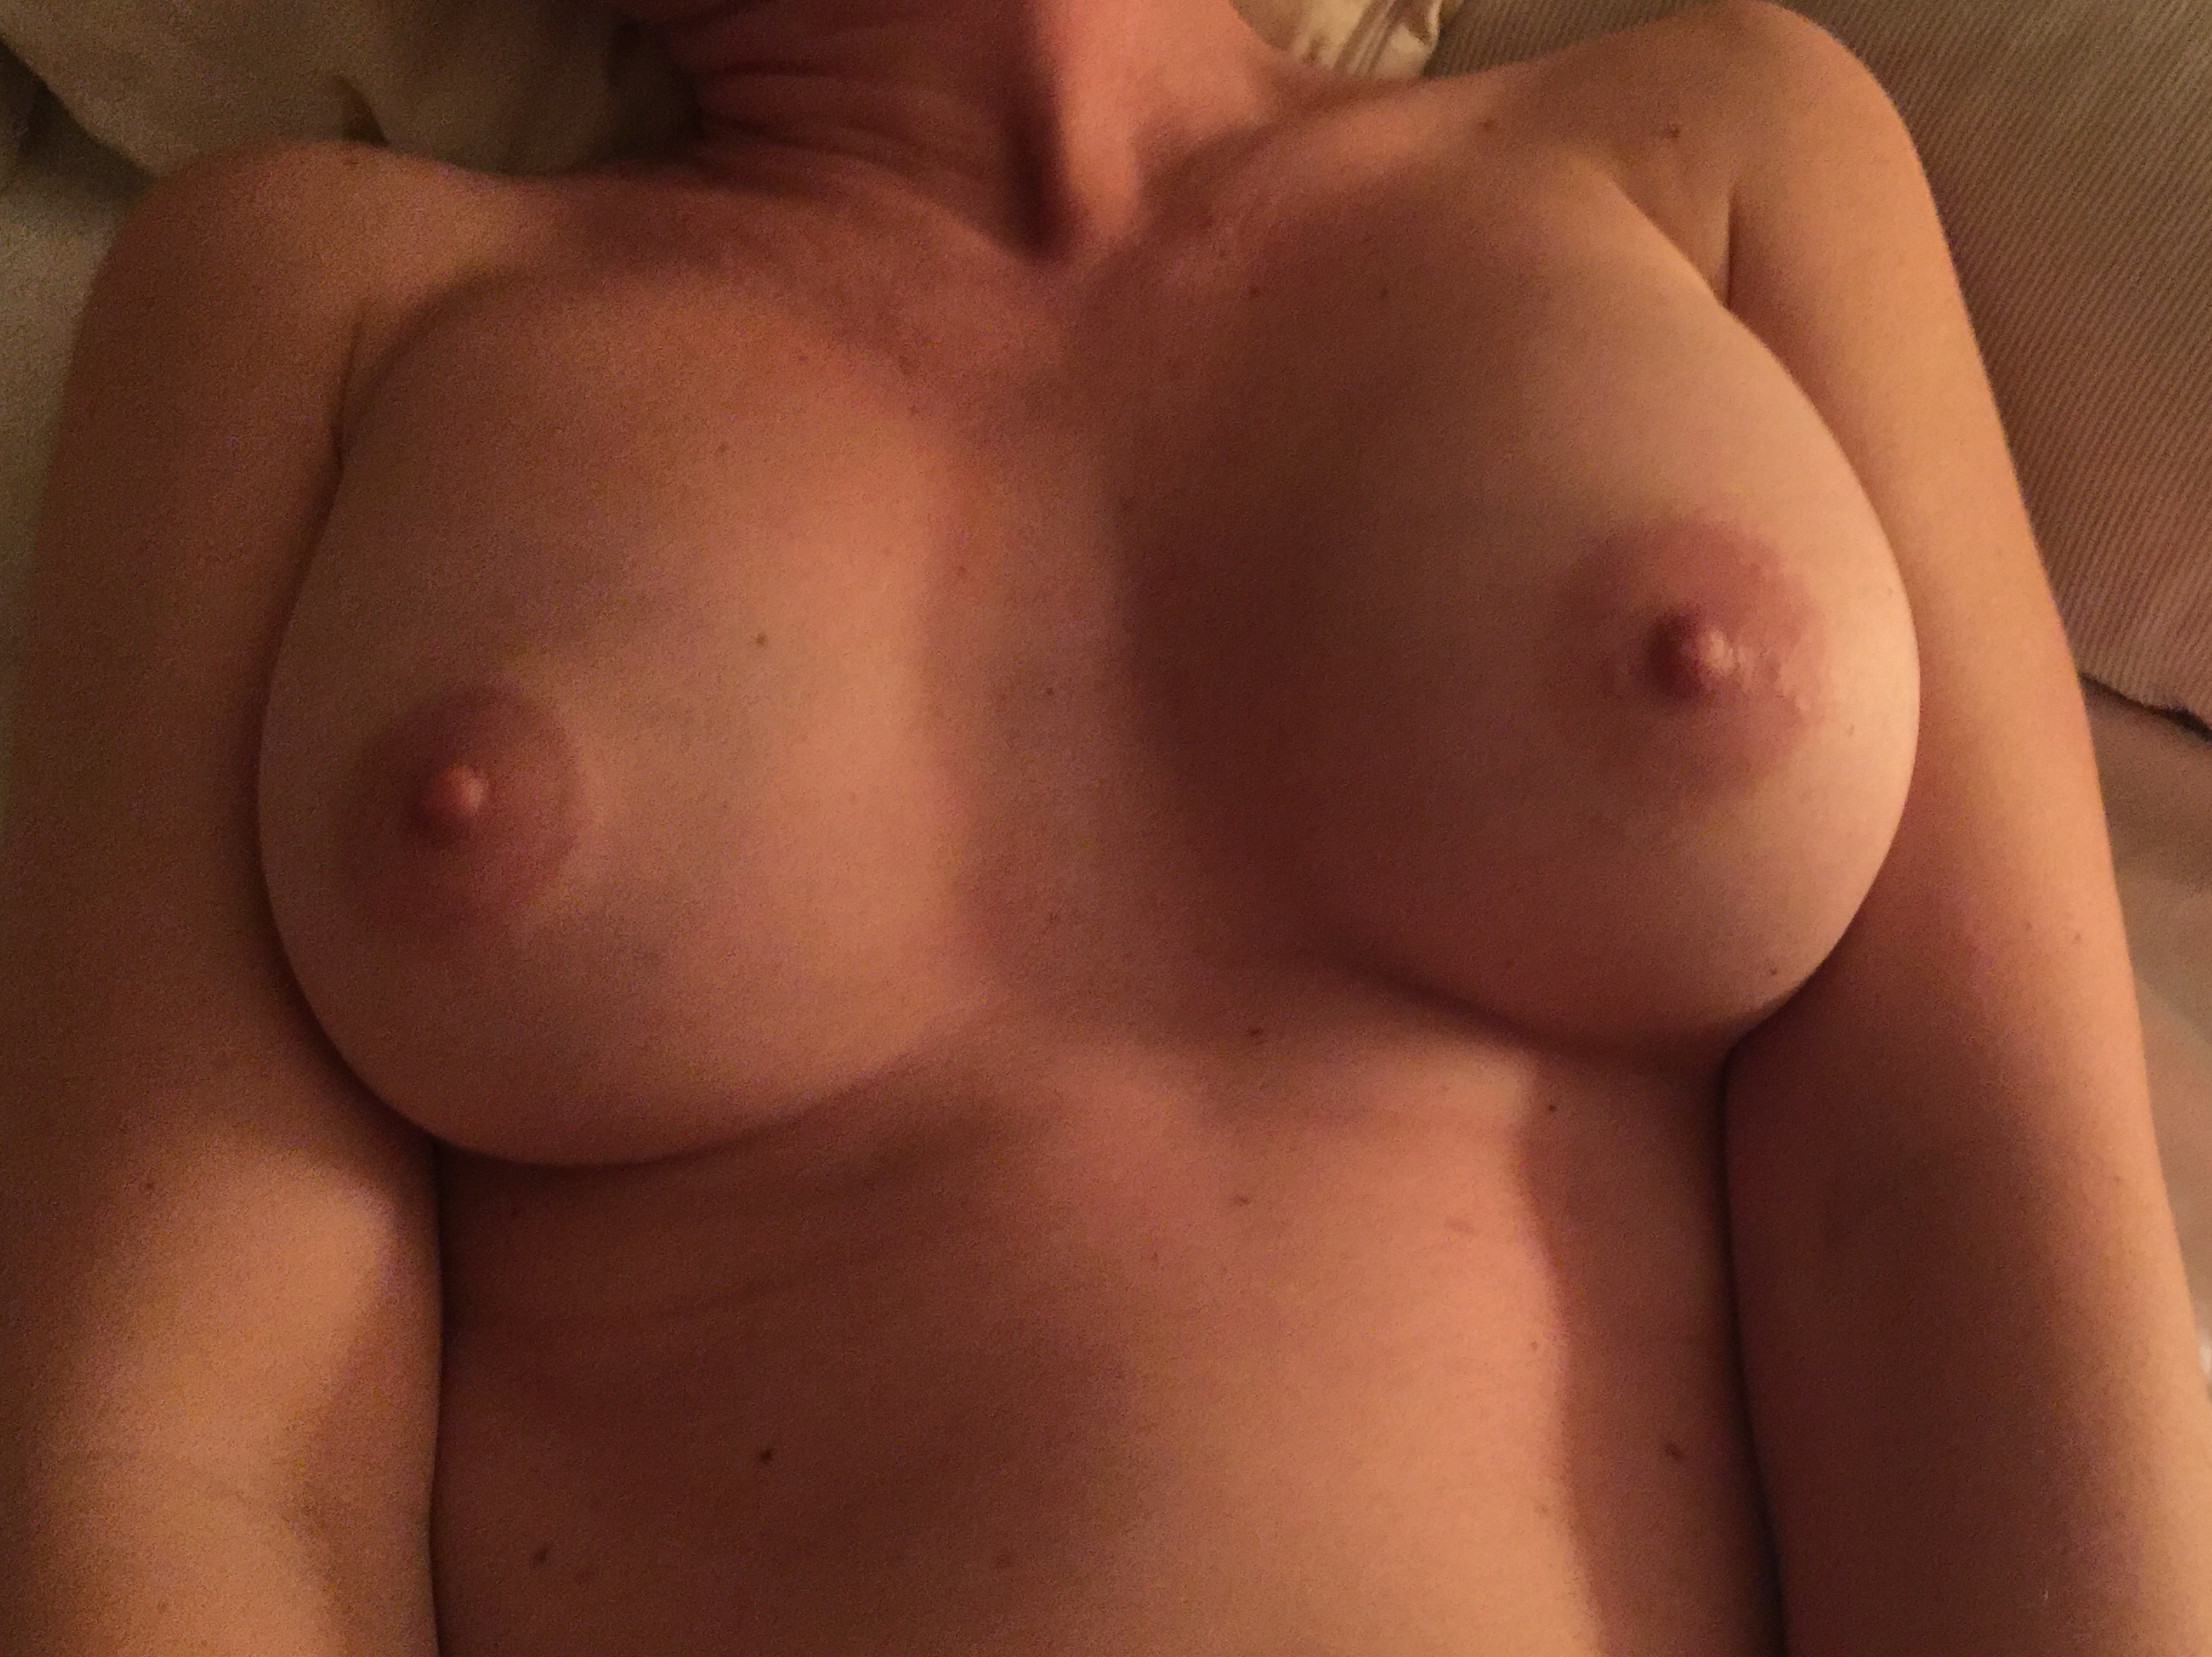 Titty tuesday images